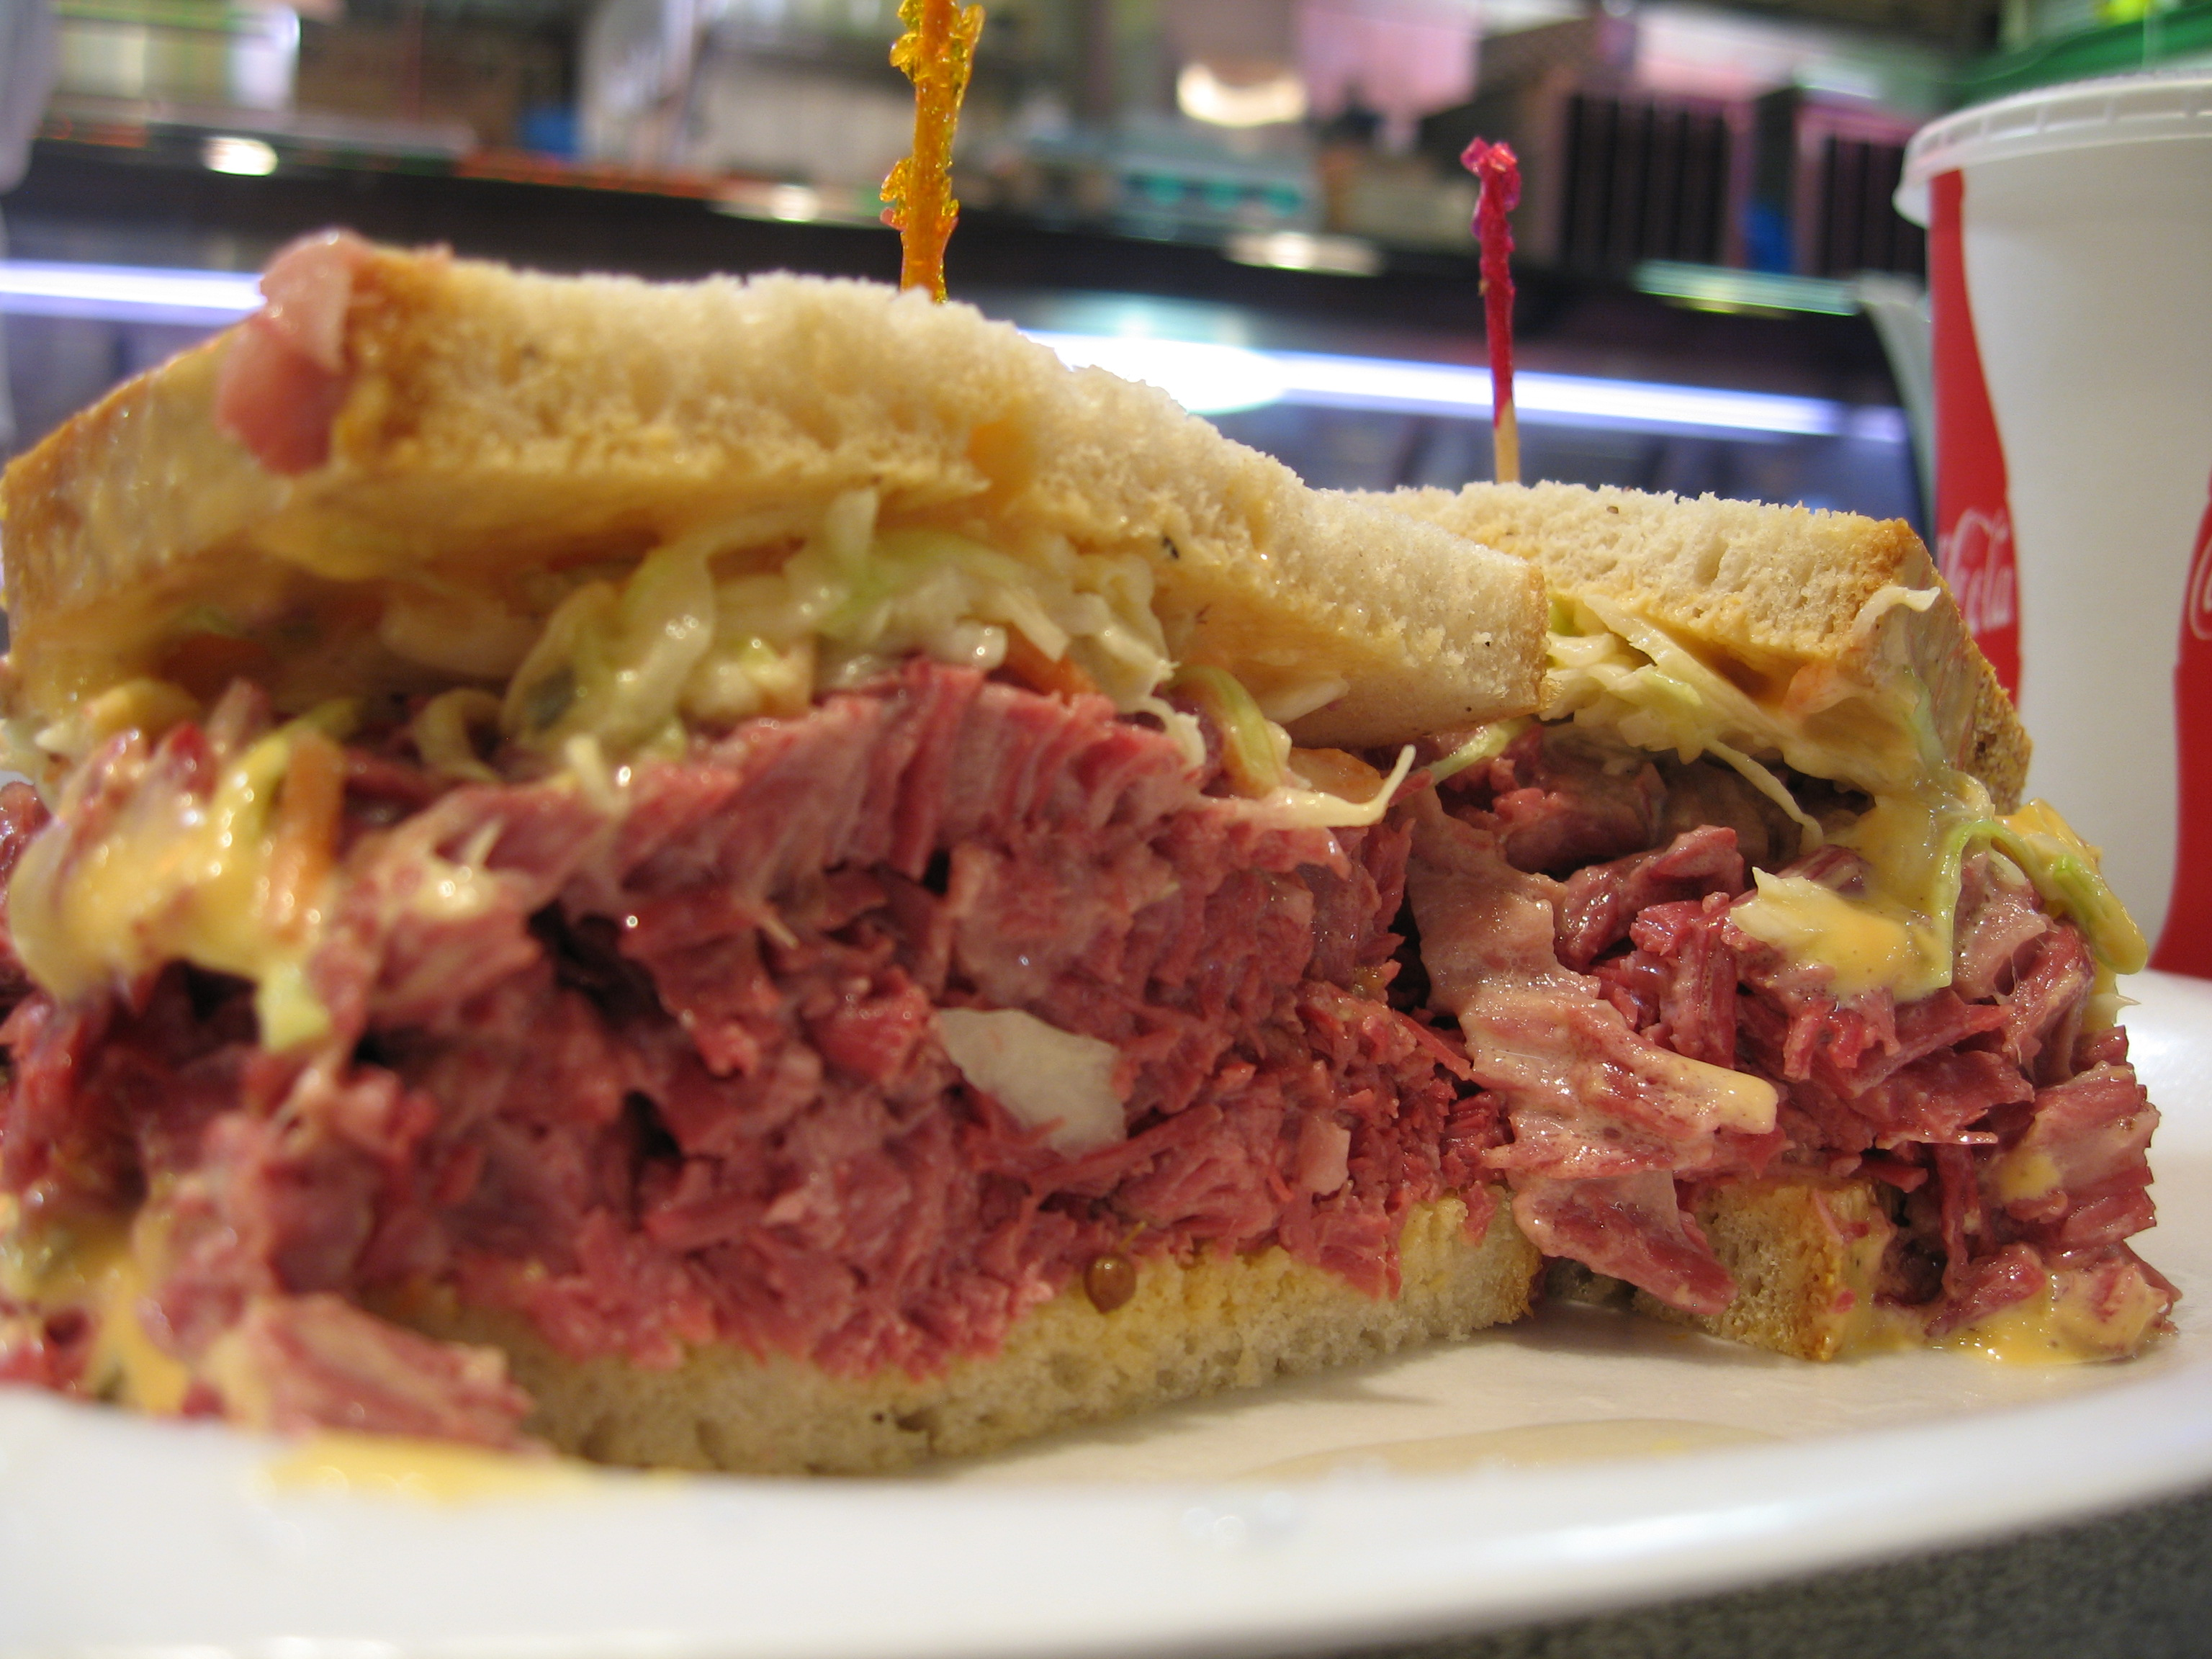 File:Corn beef Reuben sandwich.jpg - Wikipedia, the free encyclopedia